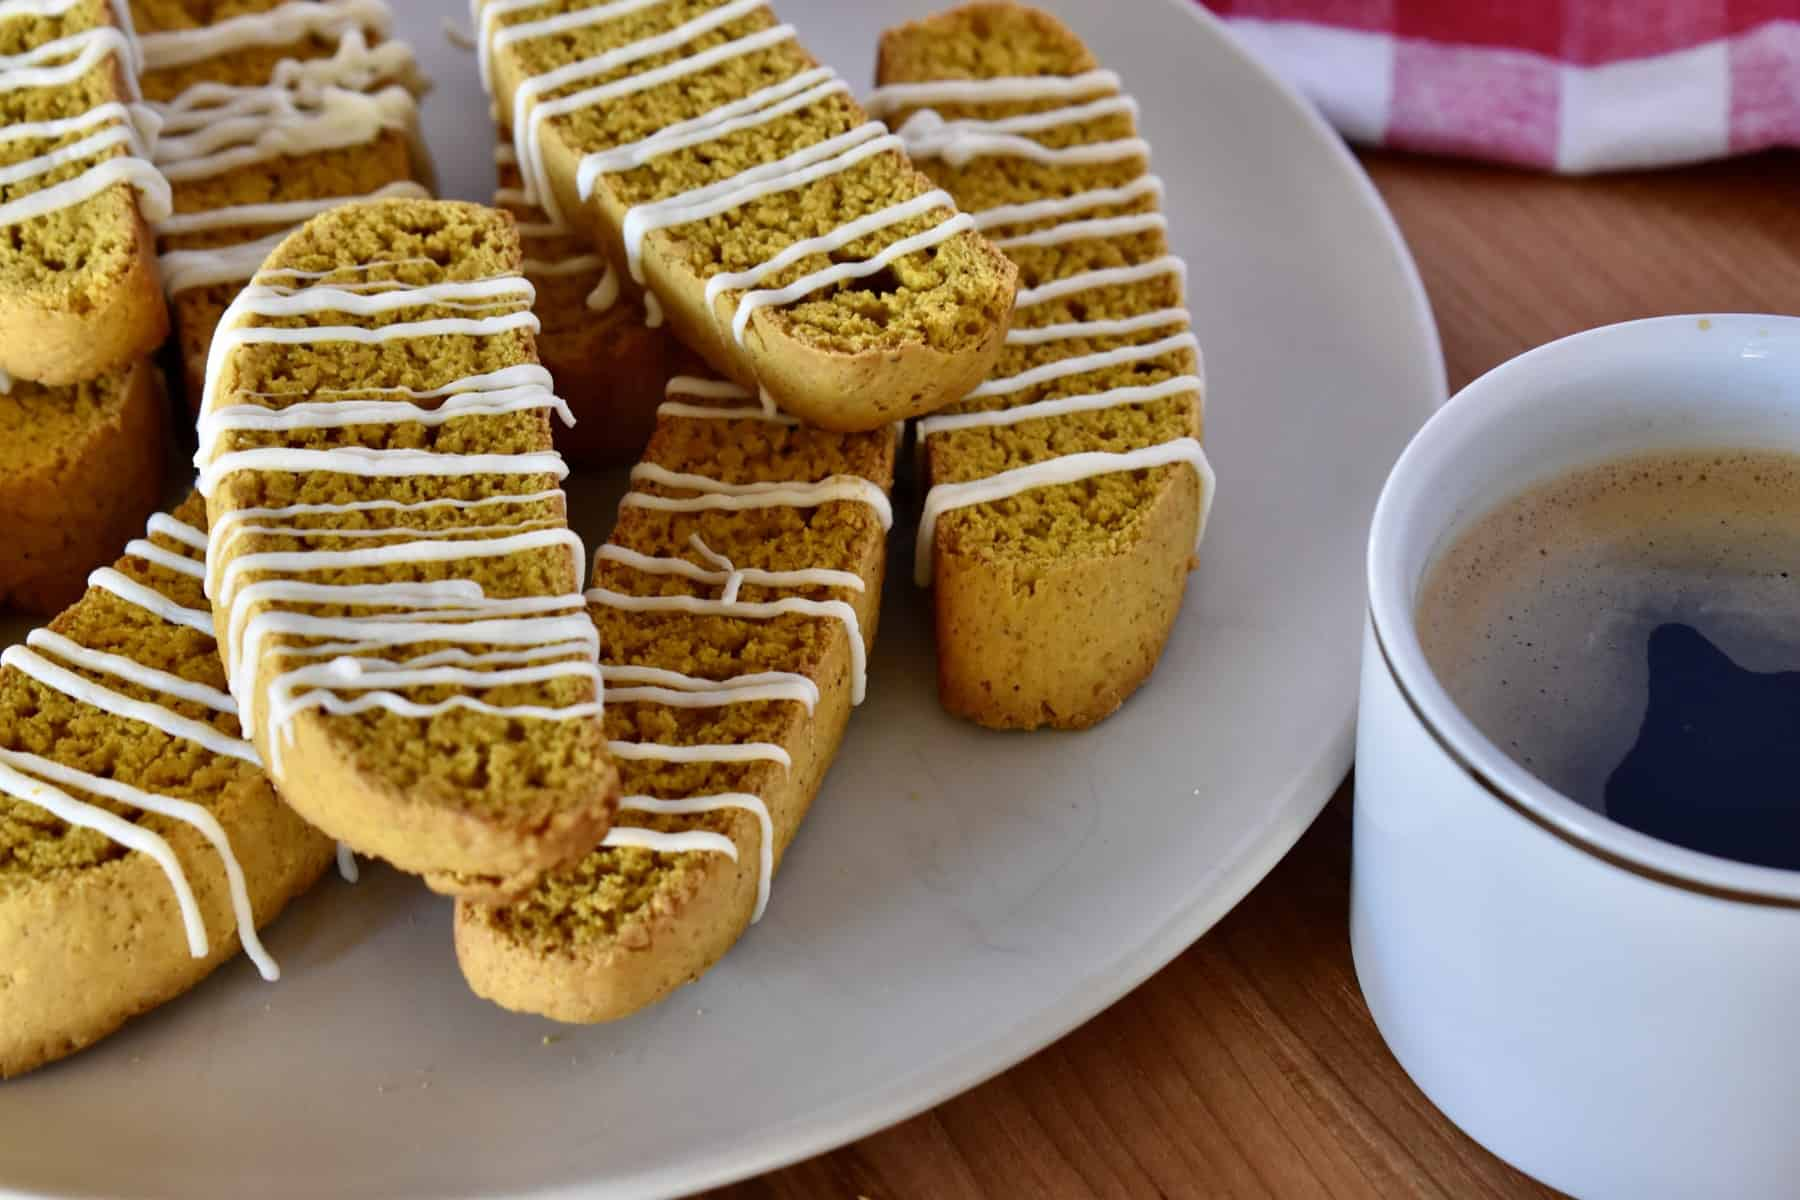 Pumpkin biscotti stacked on a plate with a cup of coffee next to it.